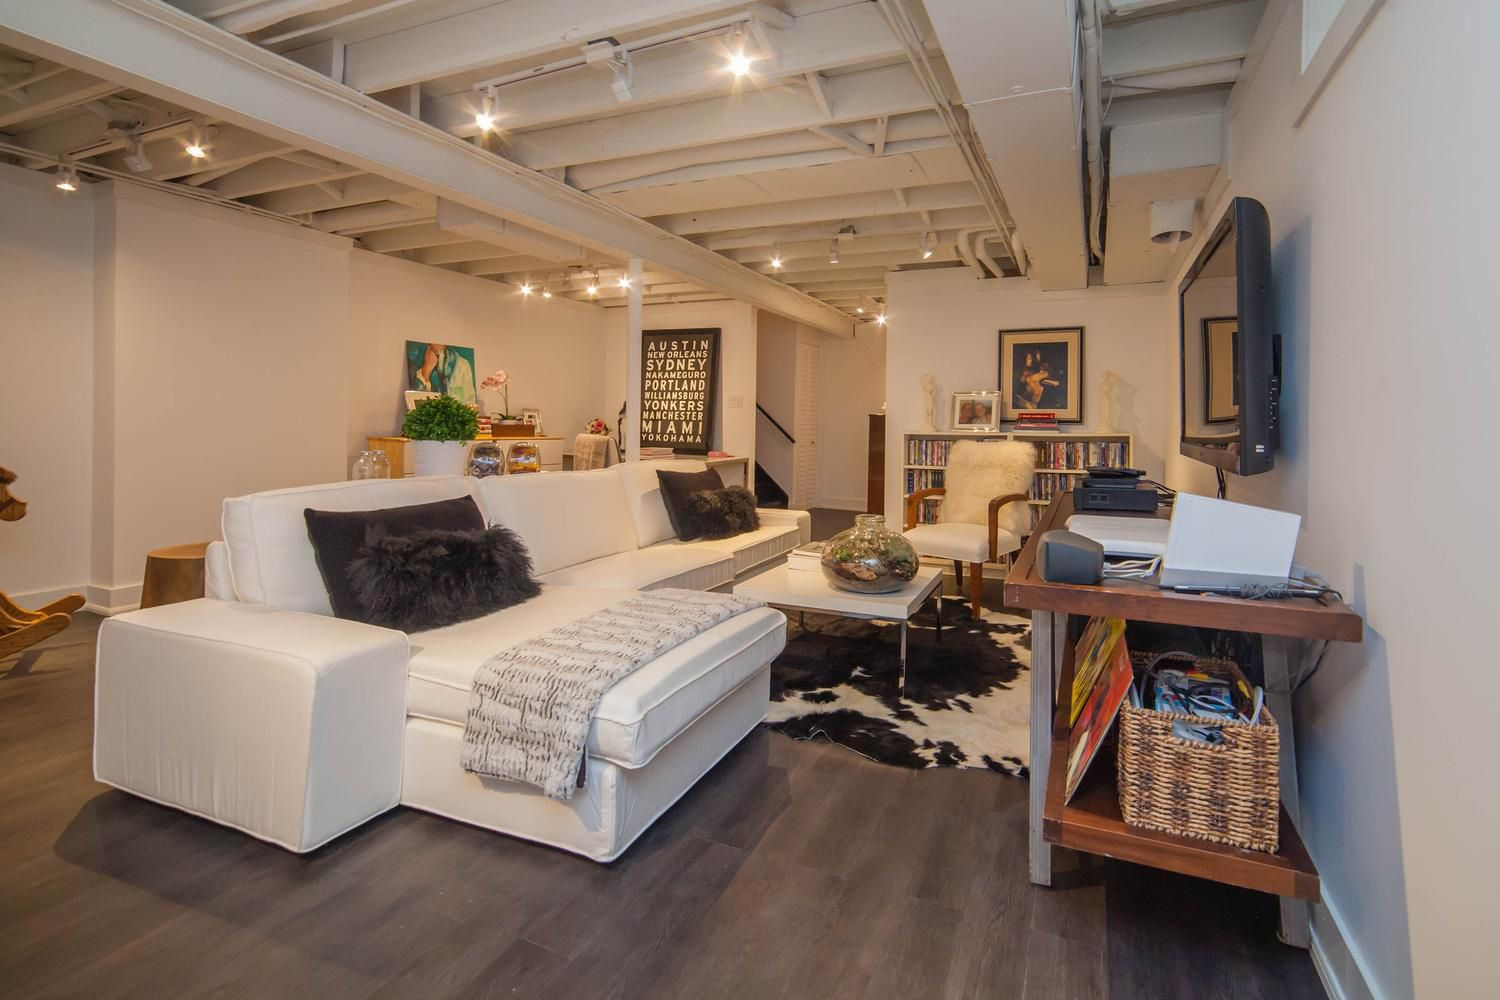 Loft style ceilings are a great way to add extra ceiling height.   Basementscanada.com 416-633-7180